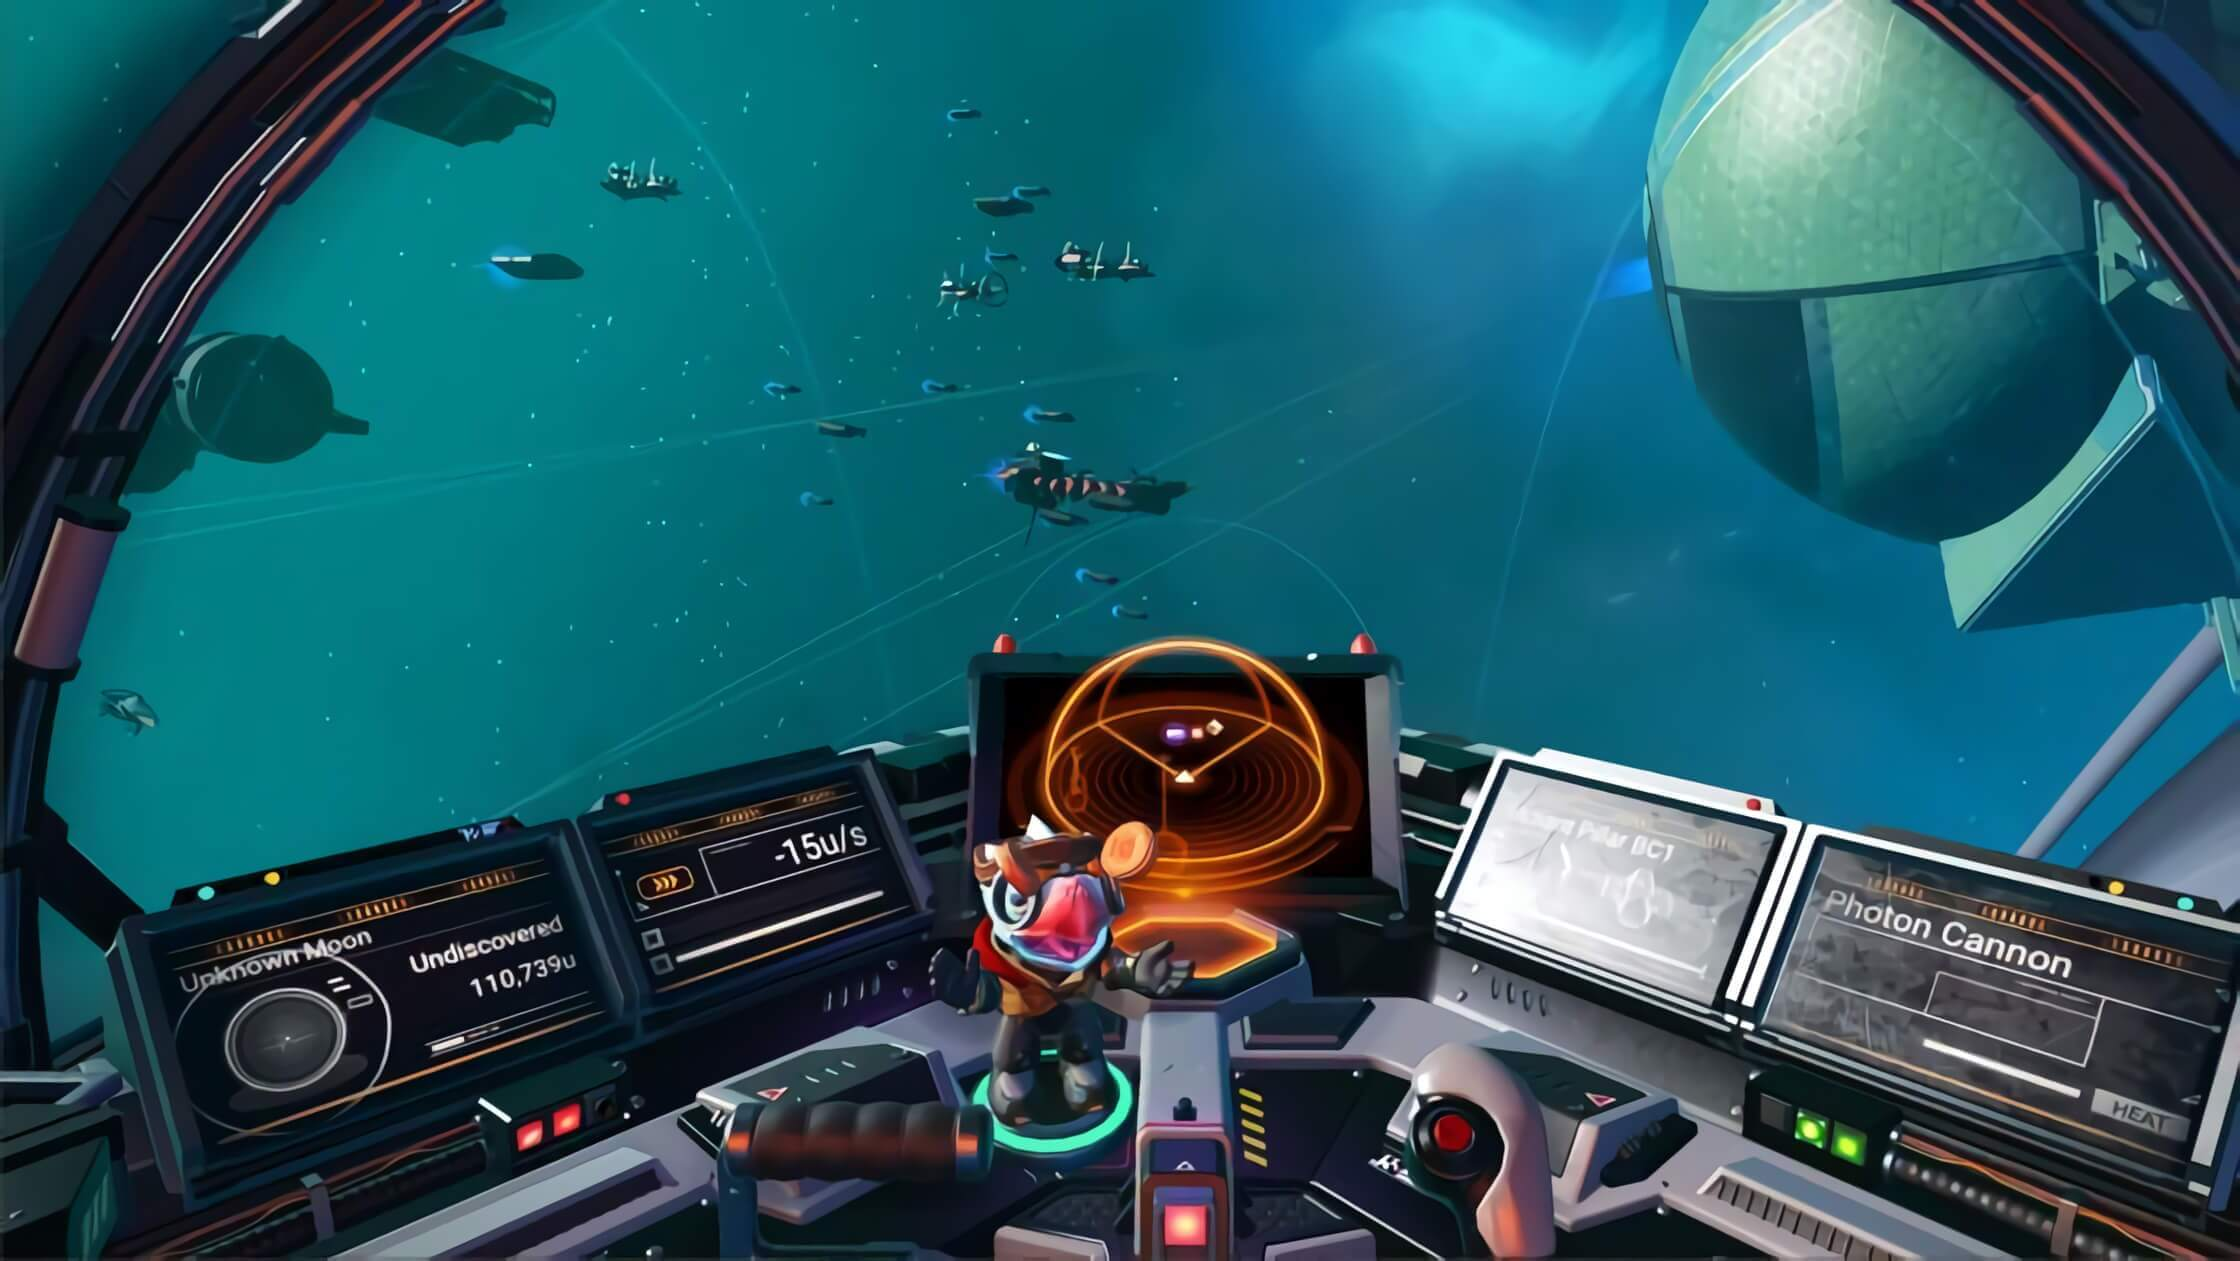 Latest No Man's Sky patch introduces bobbleheads for your ship and more